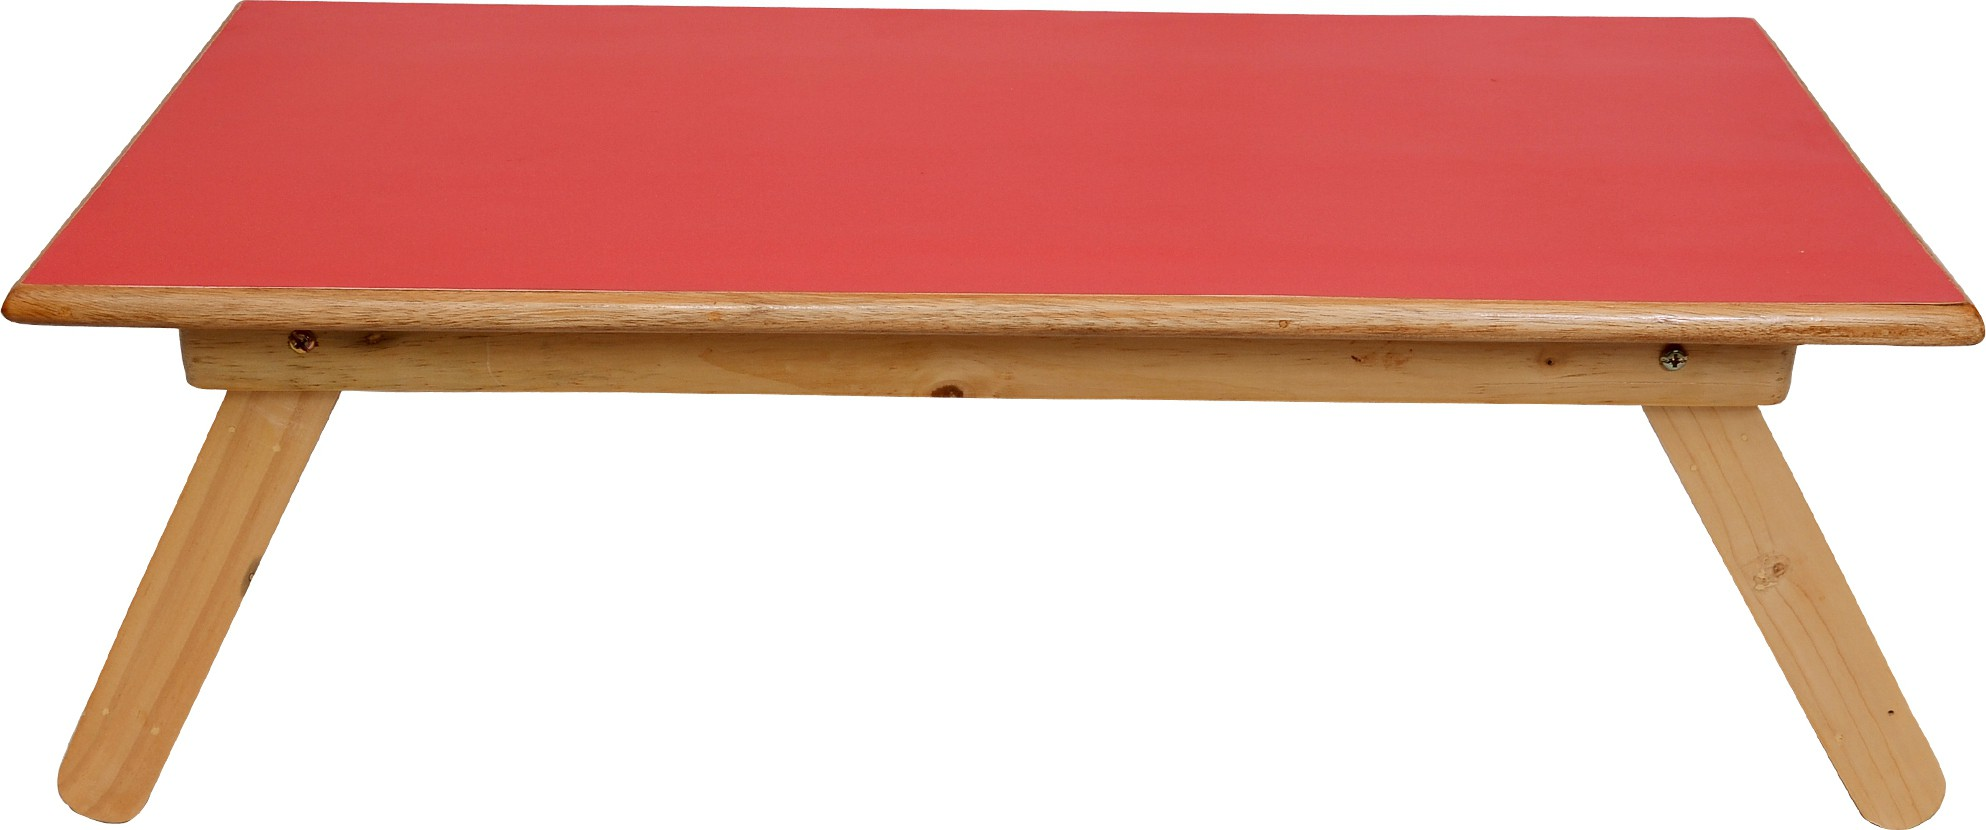 View Wood O Plast Engineered Wood Portable Laptop Table(Finish Color - Red) Furniture